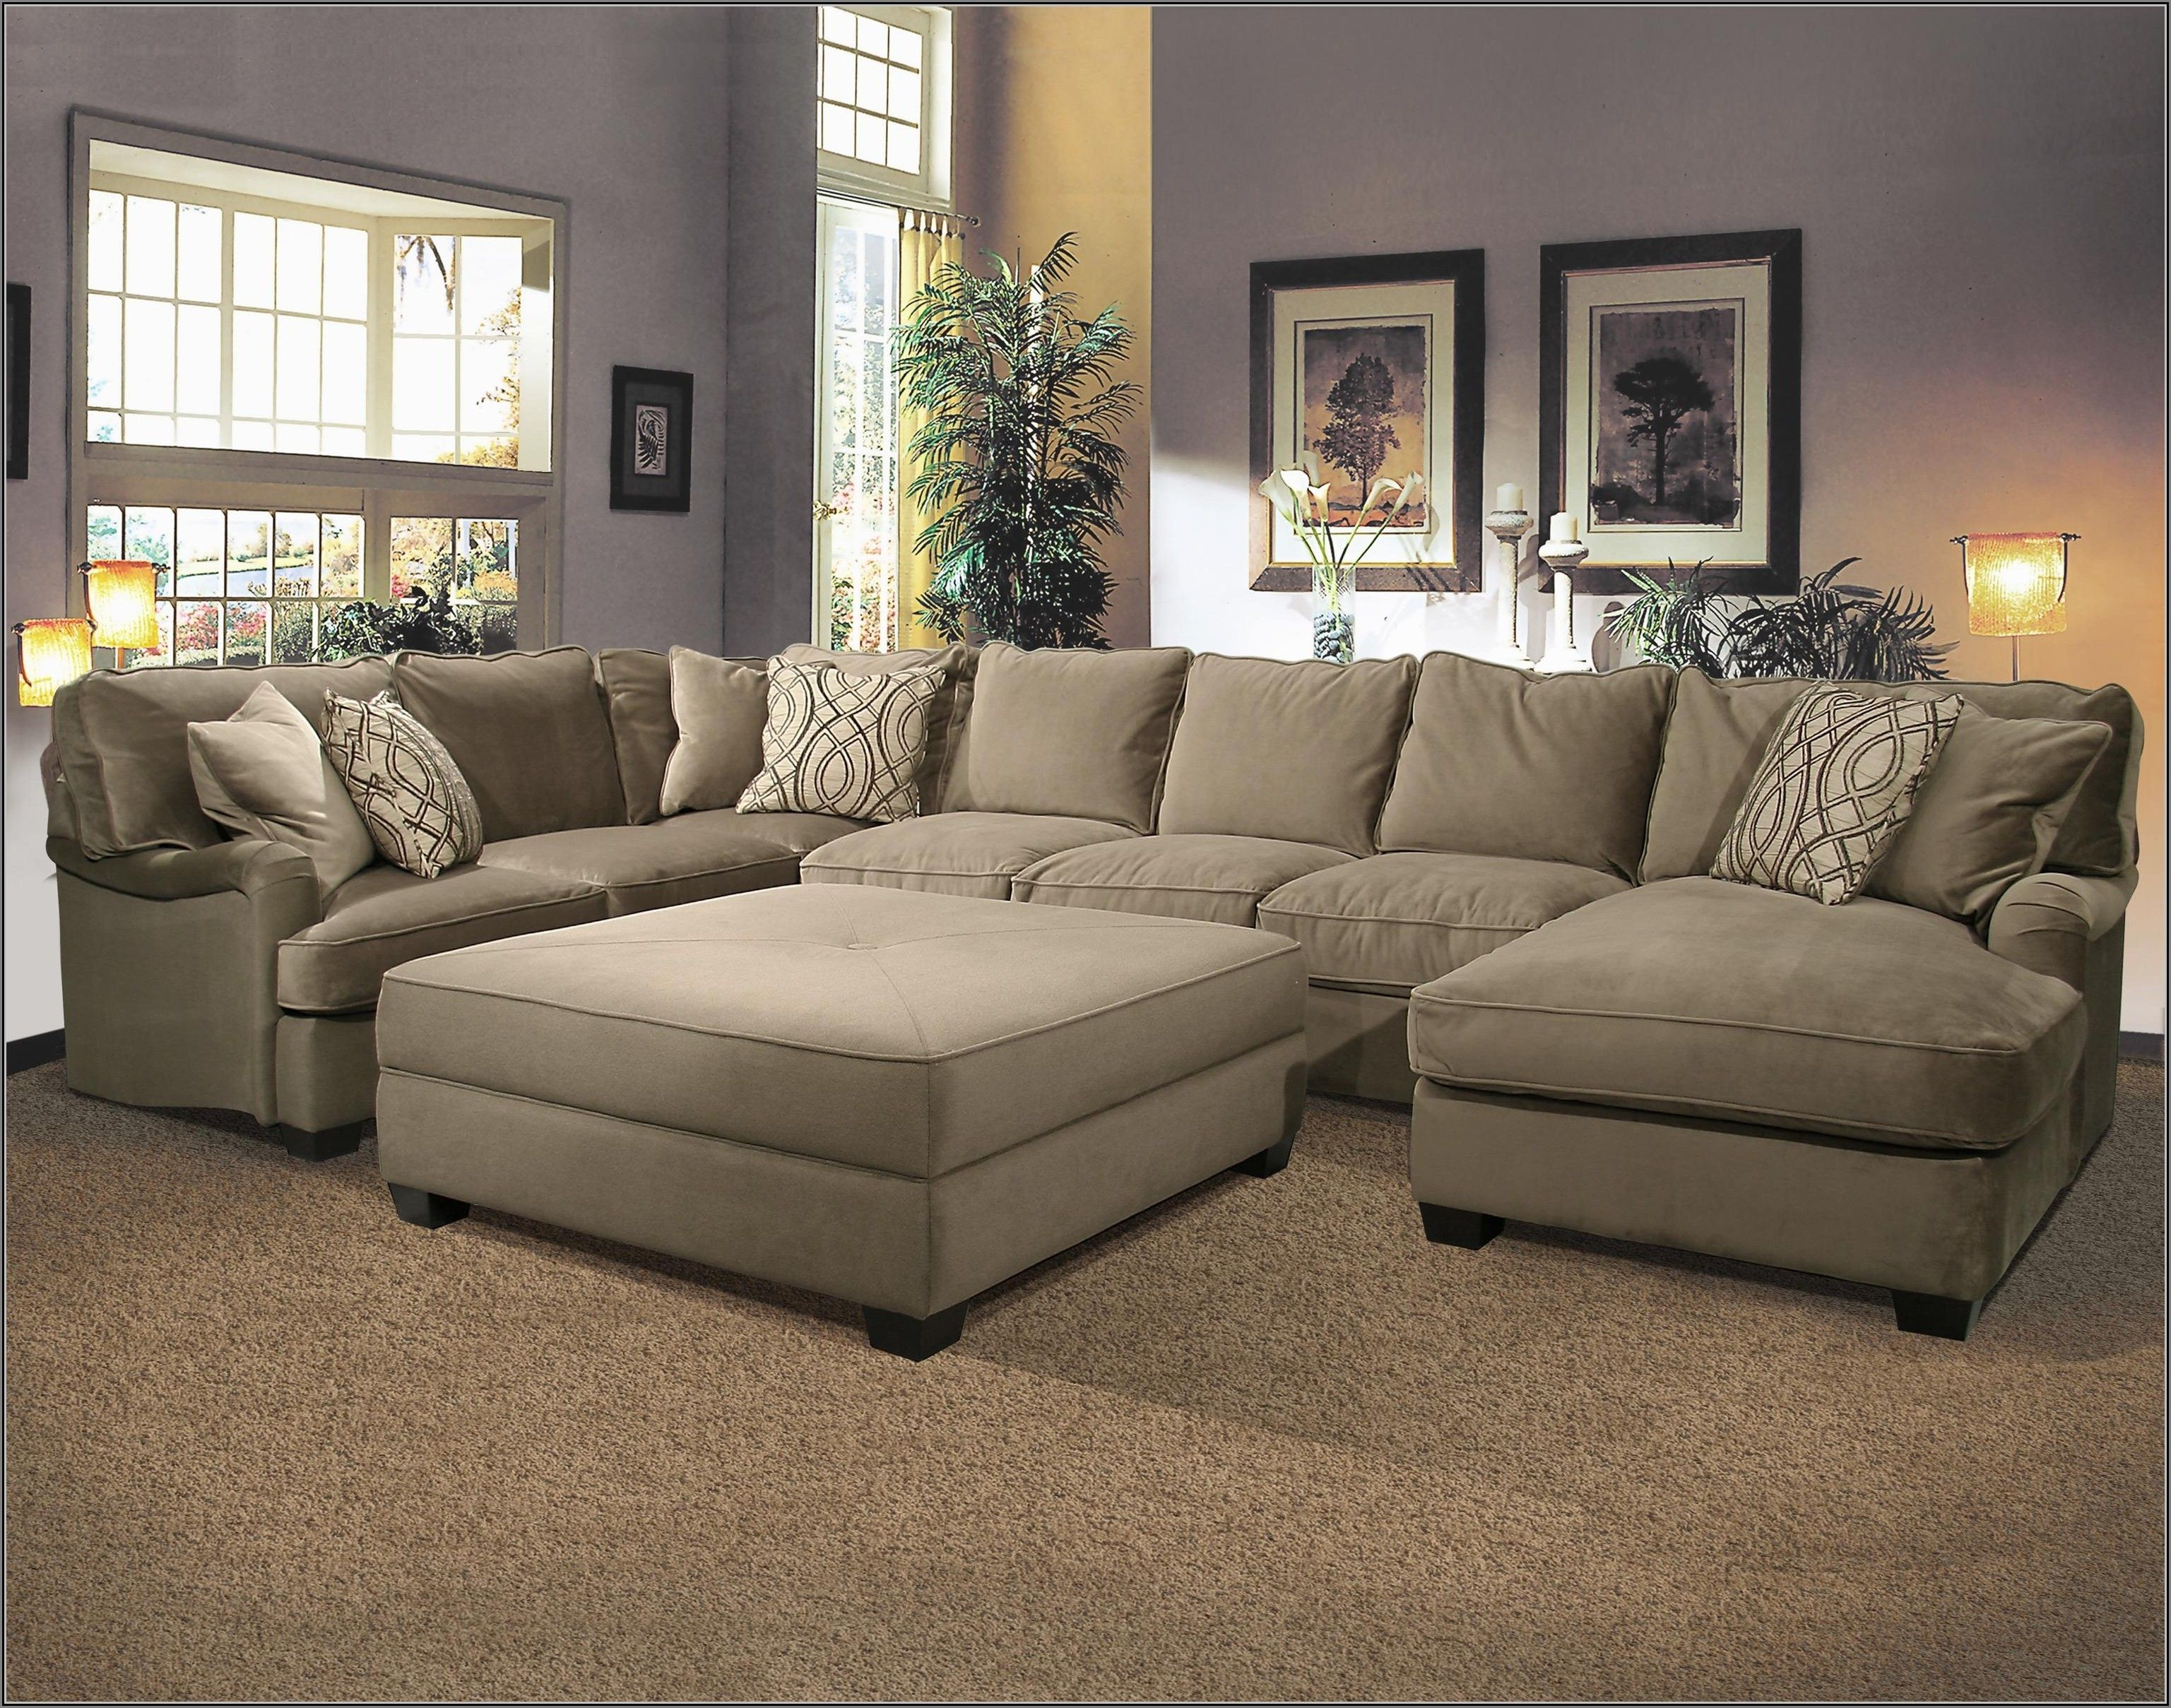 Huge Leather Sectional Sofa Velvet Pros And Cons Couches With Large Ottoman In 2019 House Decor